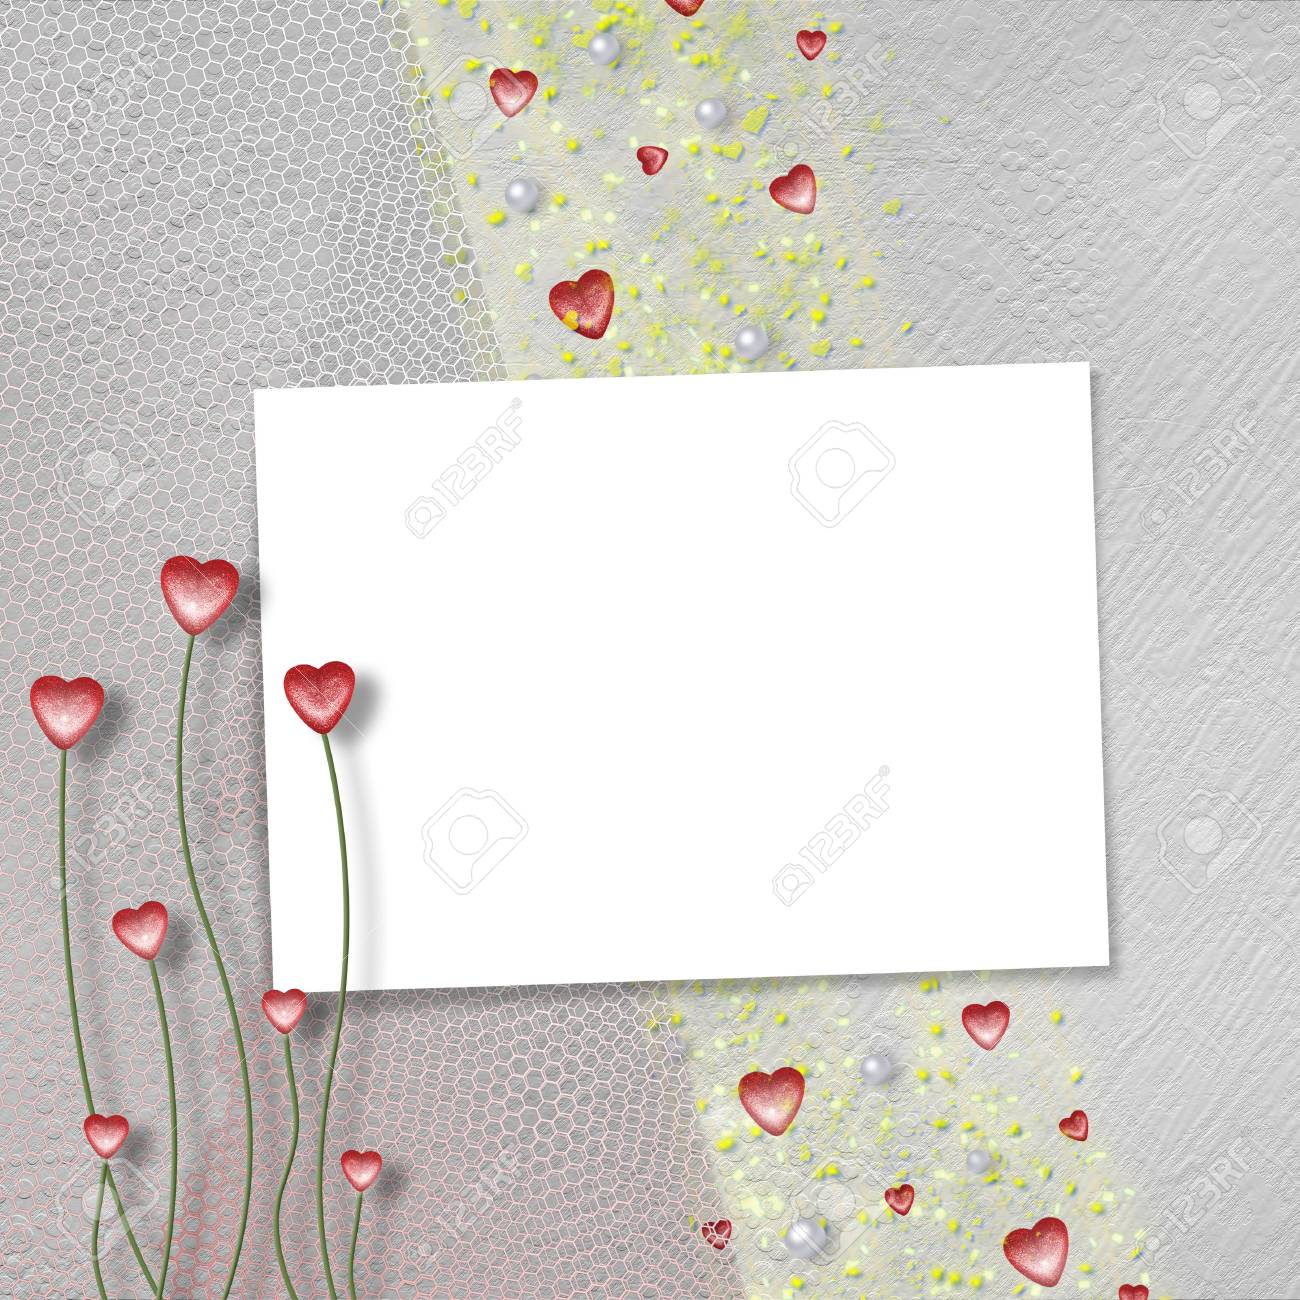 Card for anniversary or congratulation with  pearls and  hearts Stock Photo - 5110899